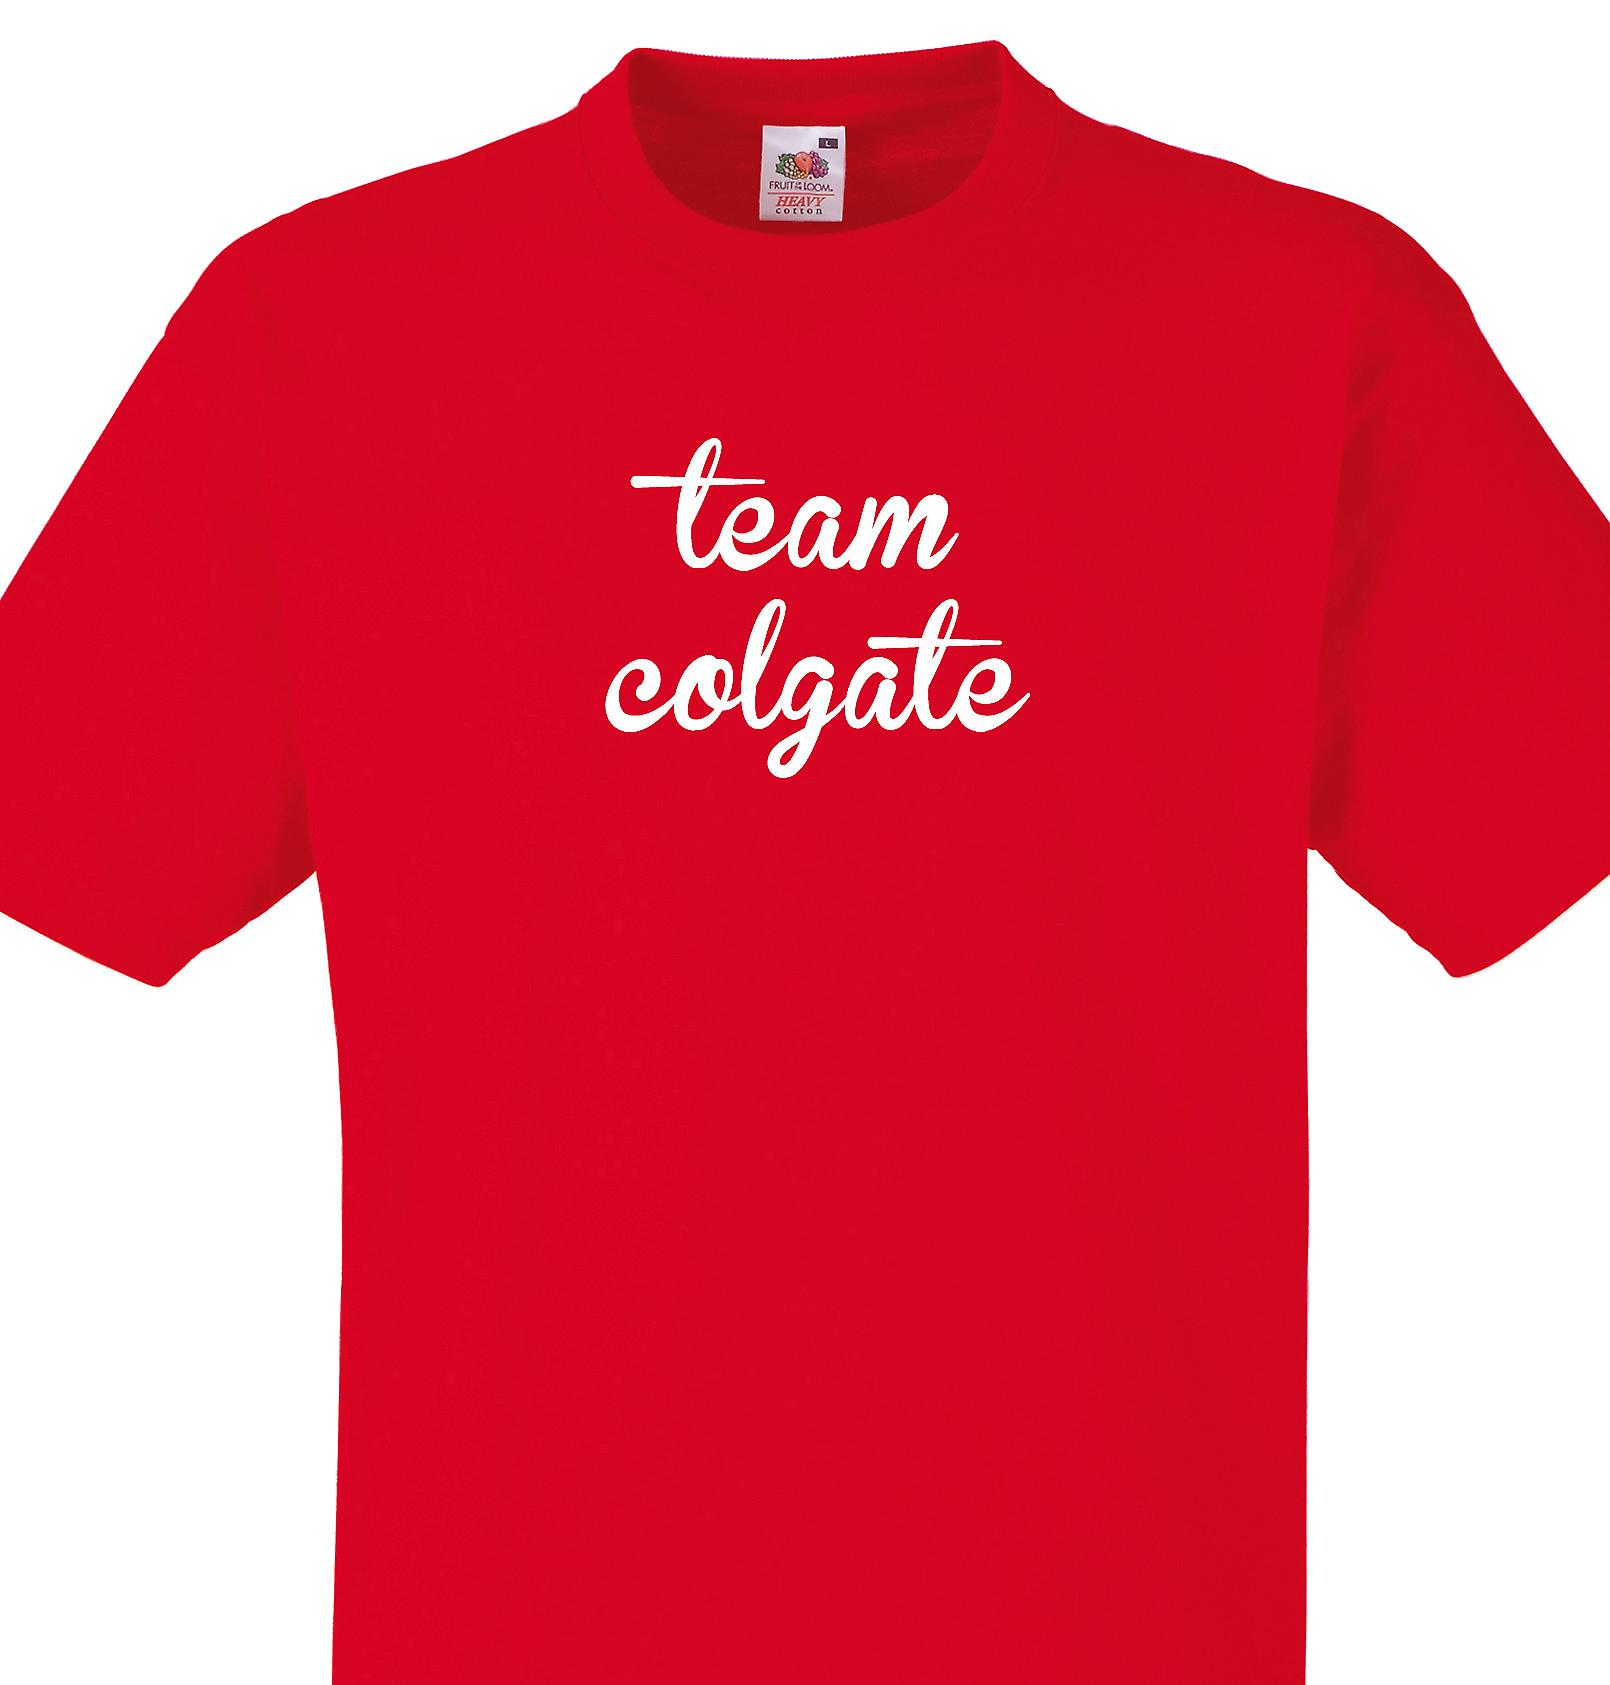 Team Colgate Red T shirt